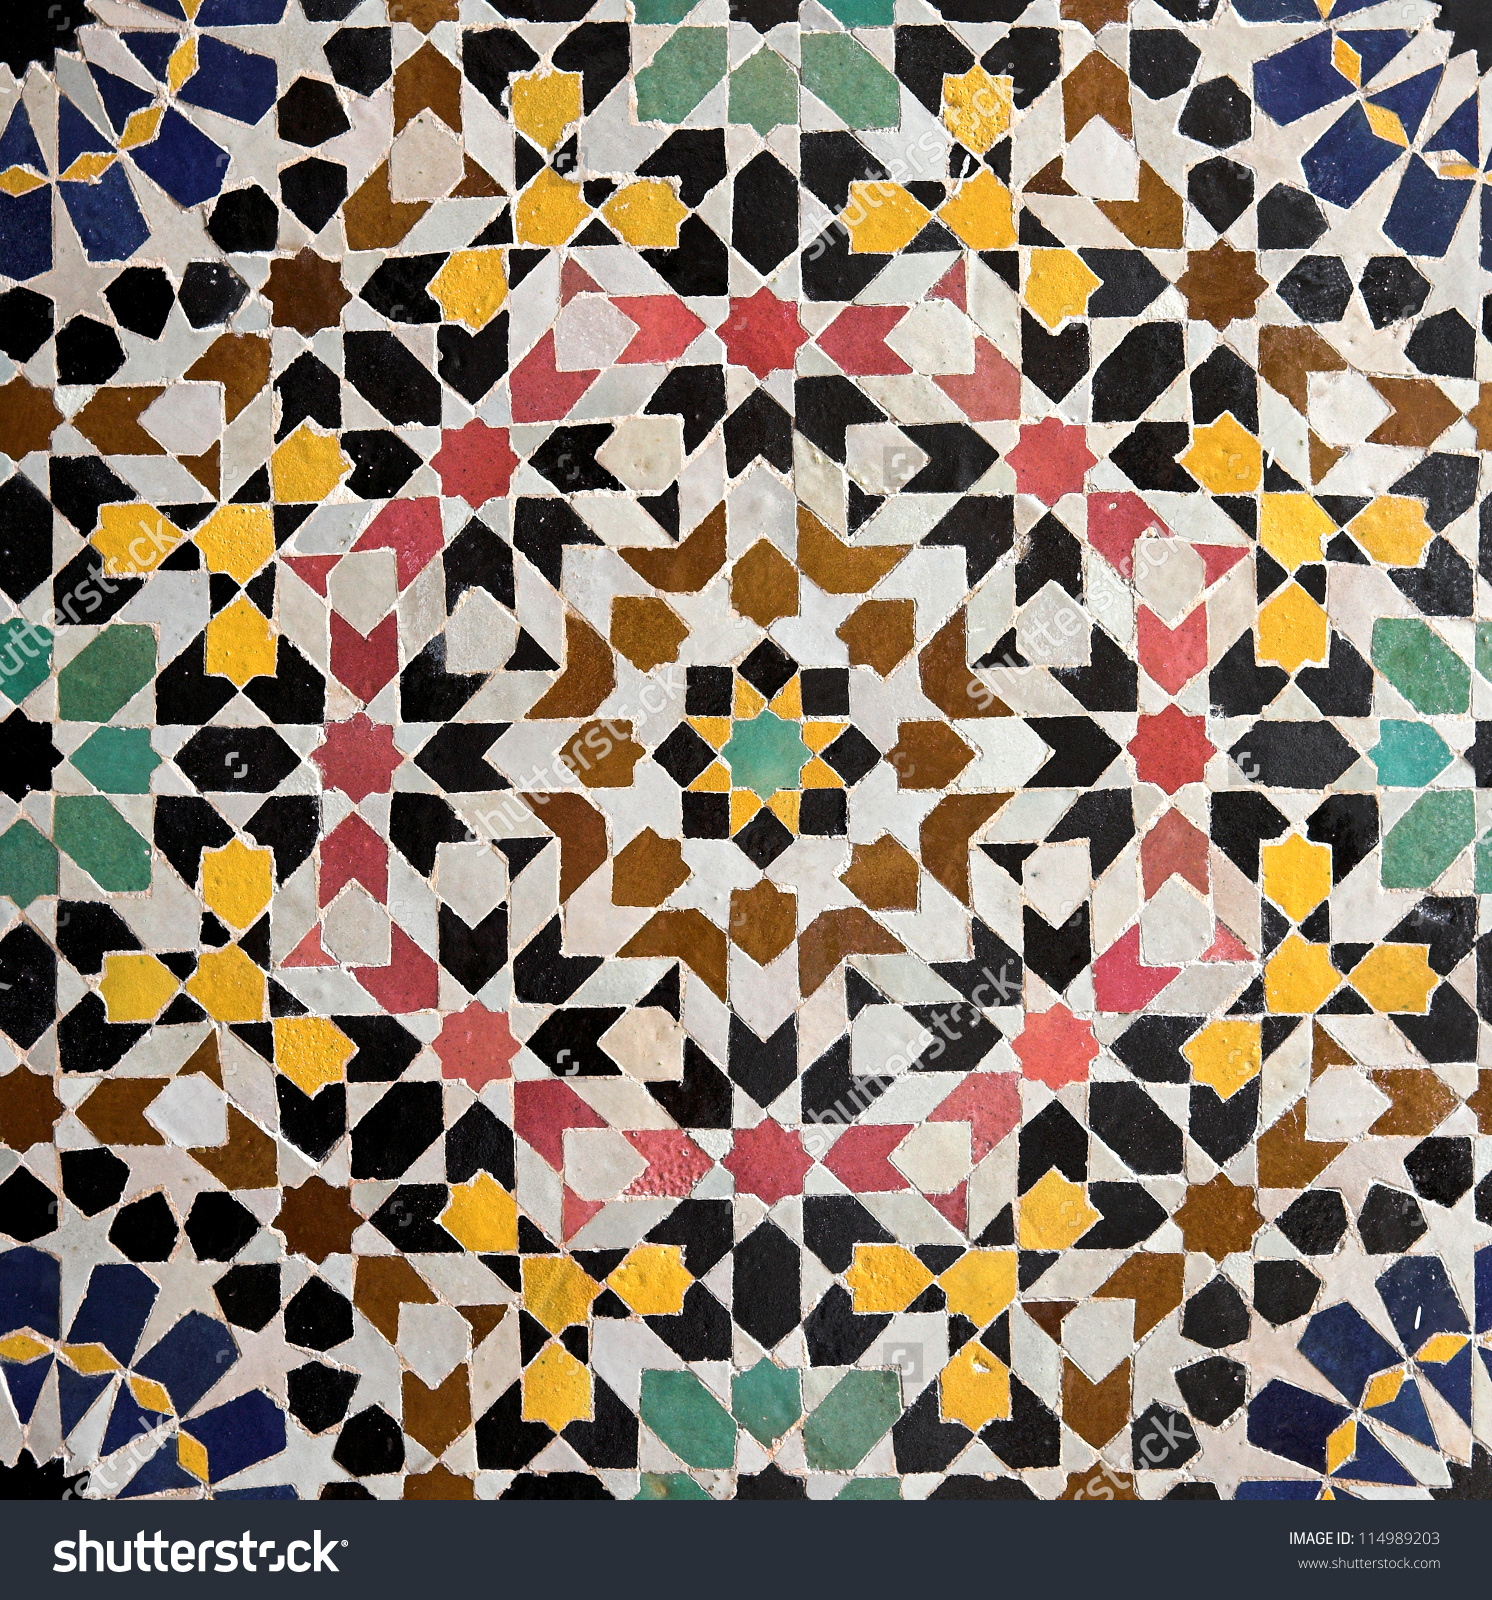 Brilliant moroccan tile for floor decor ideas with moroccan tile backsplash